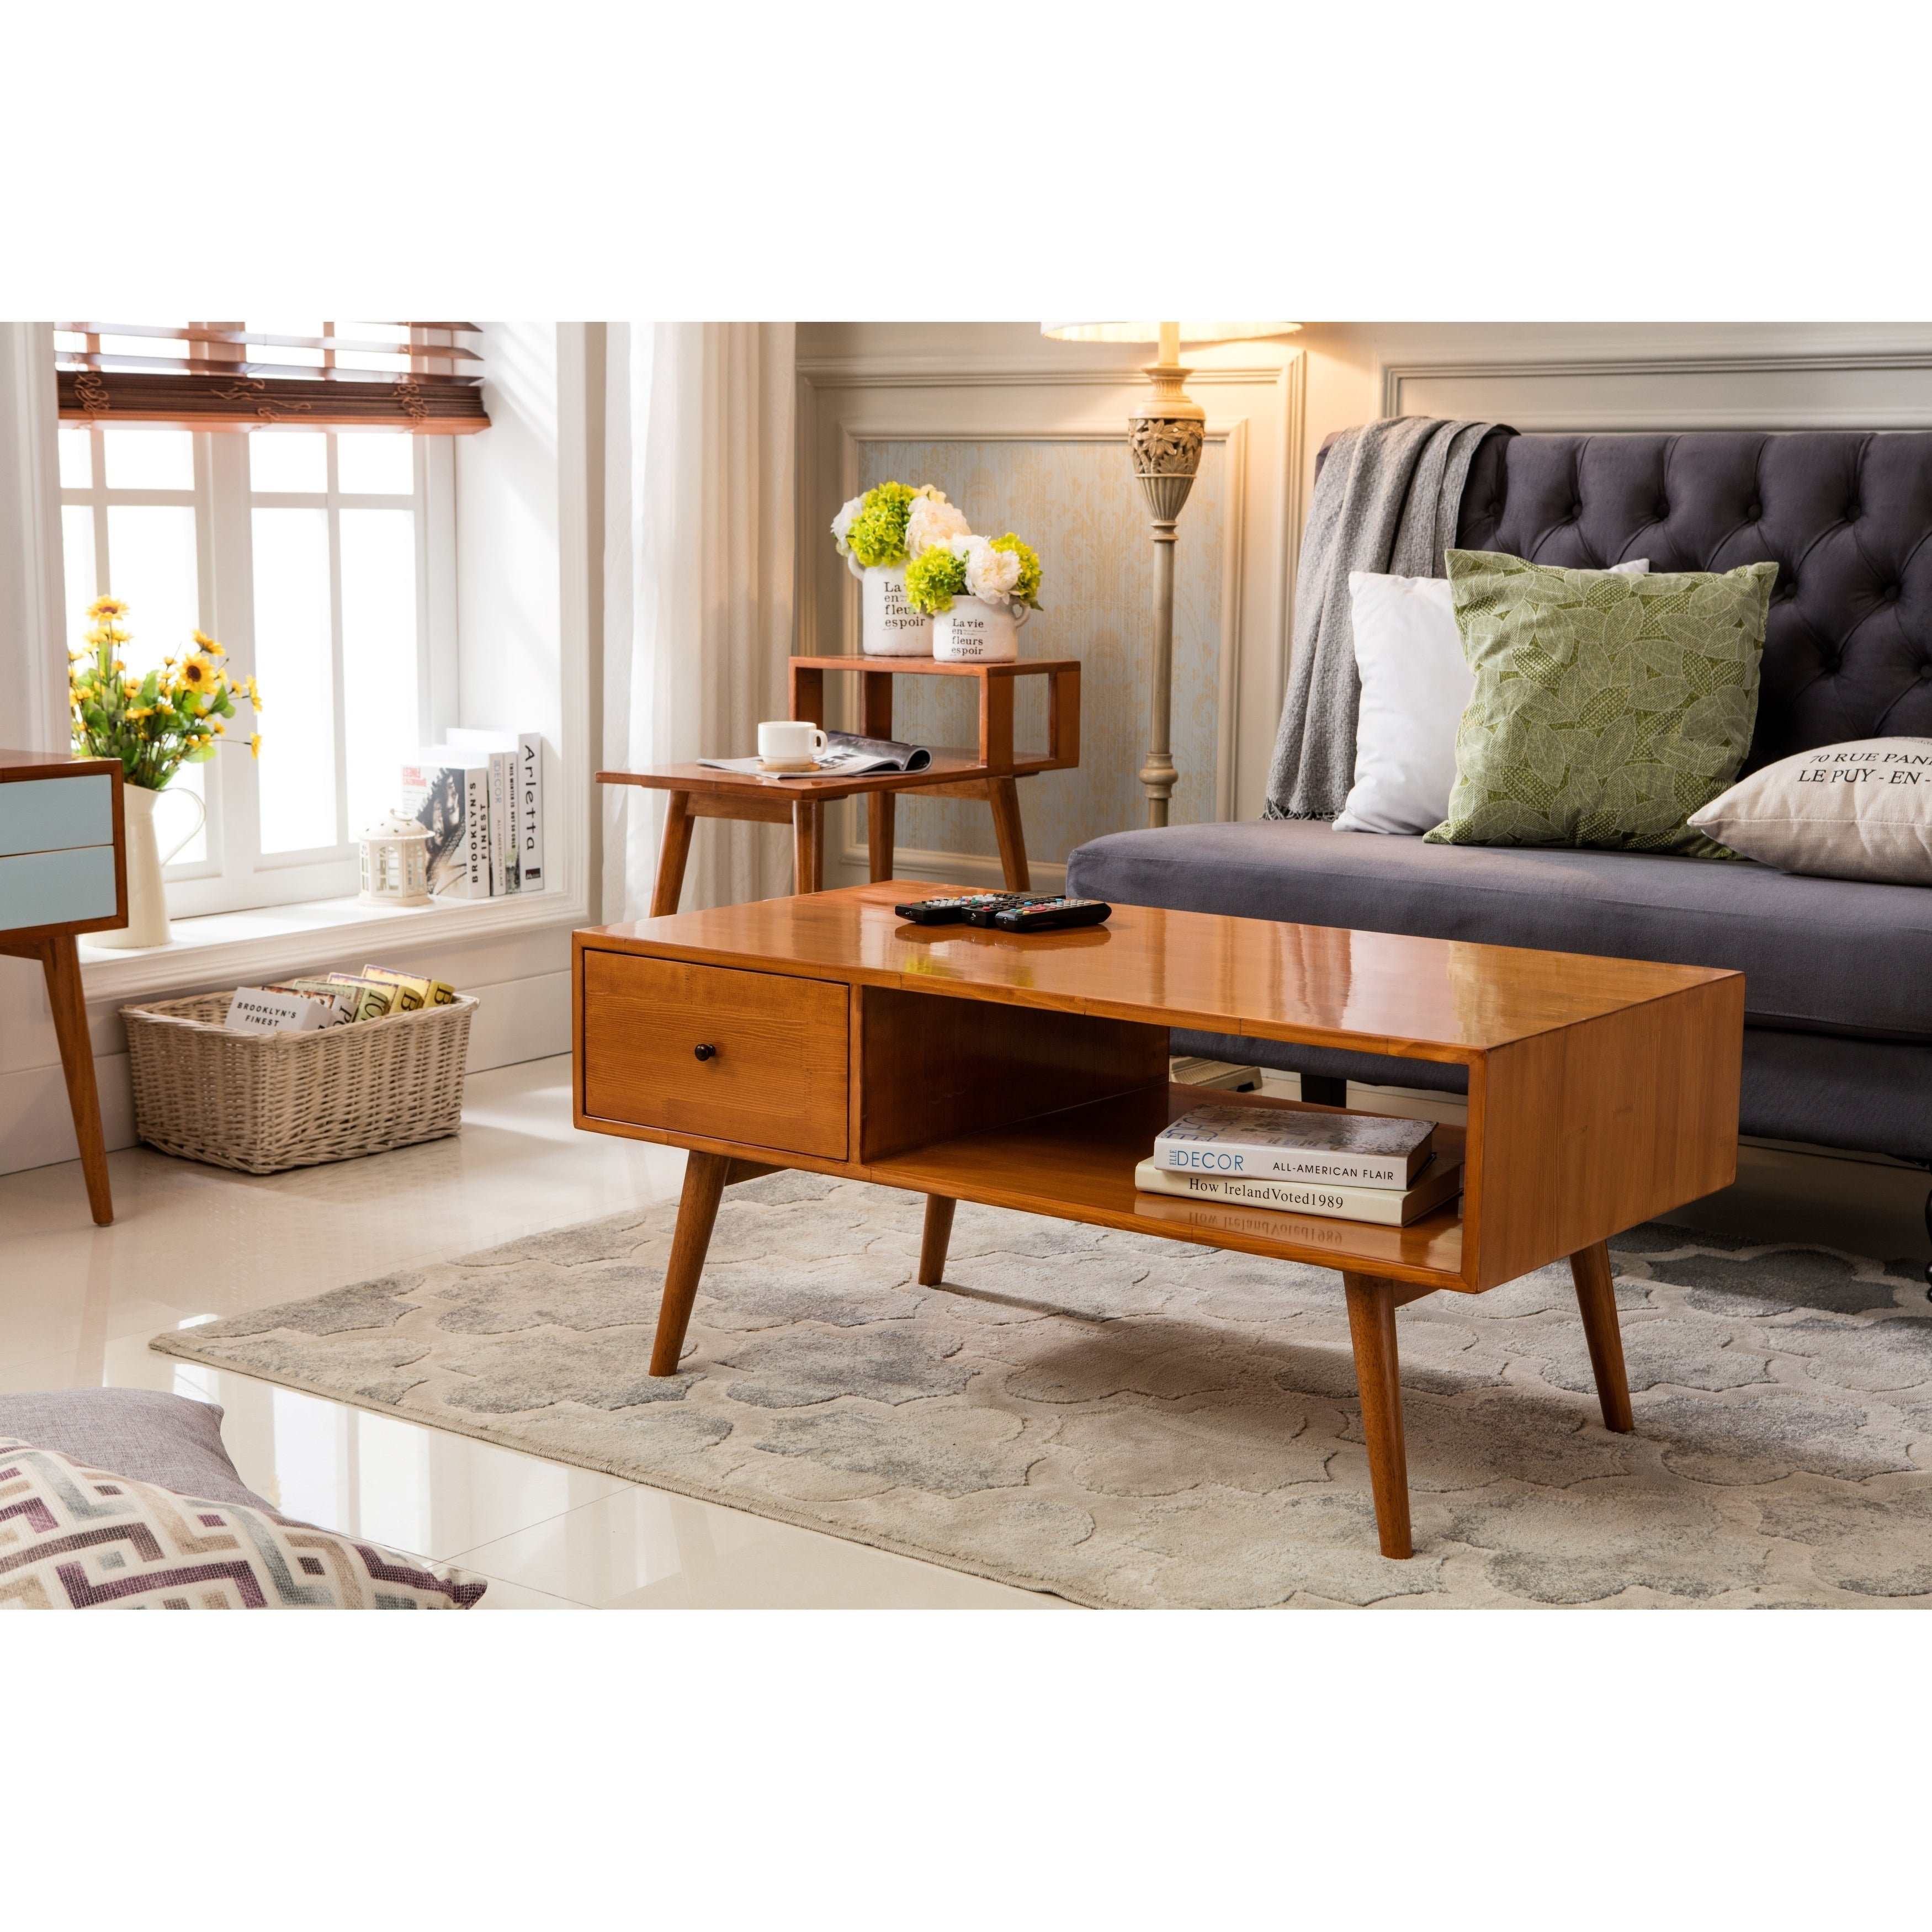 Porthos Home Bowie Mid Century Coffee Table